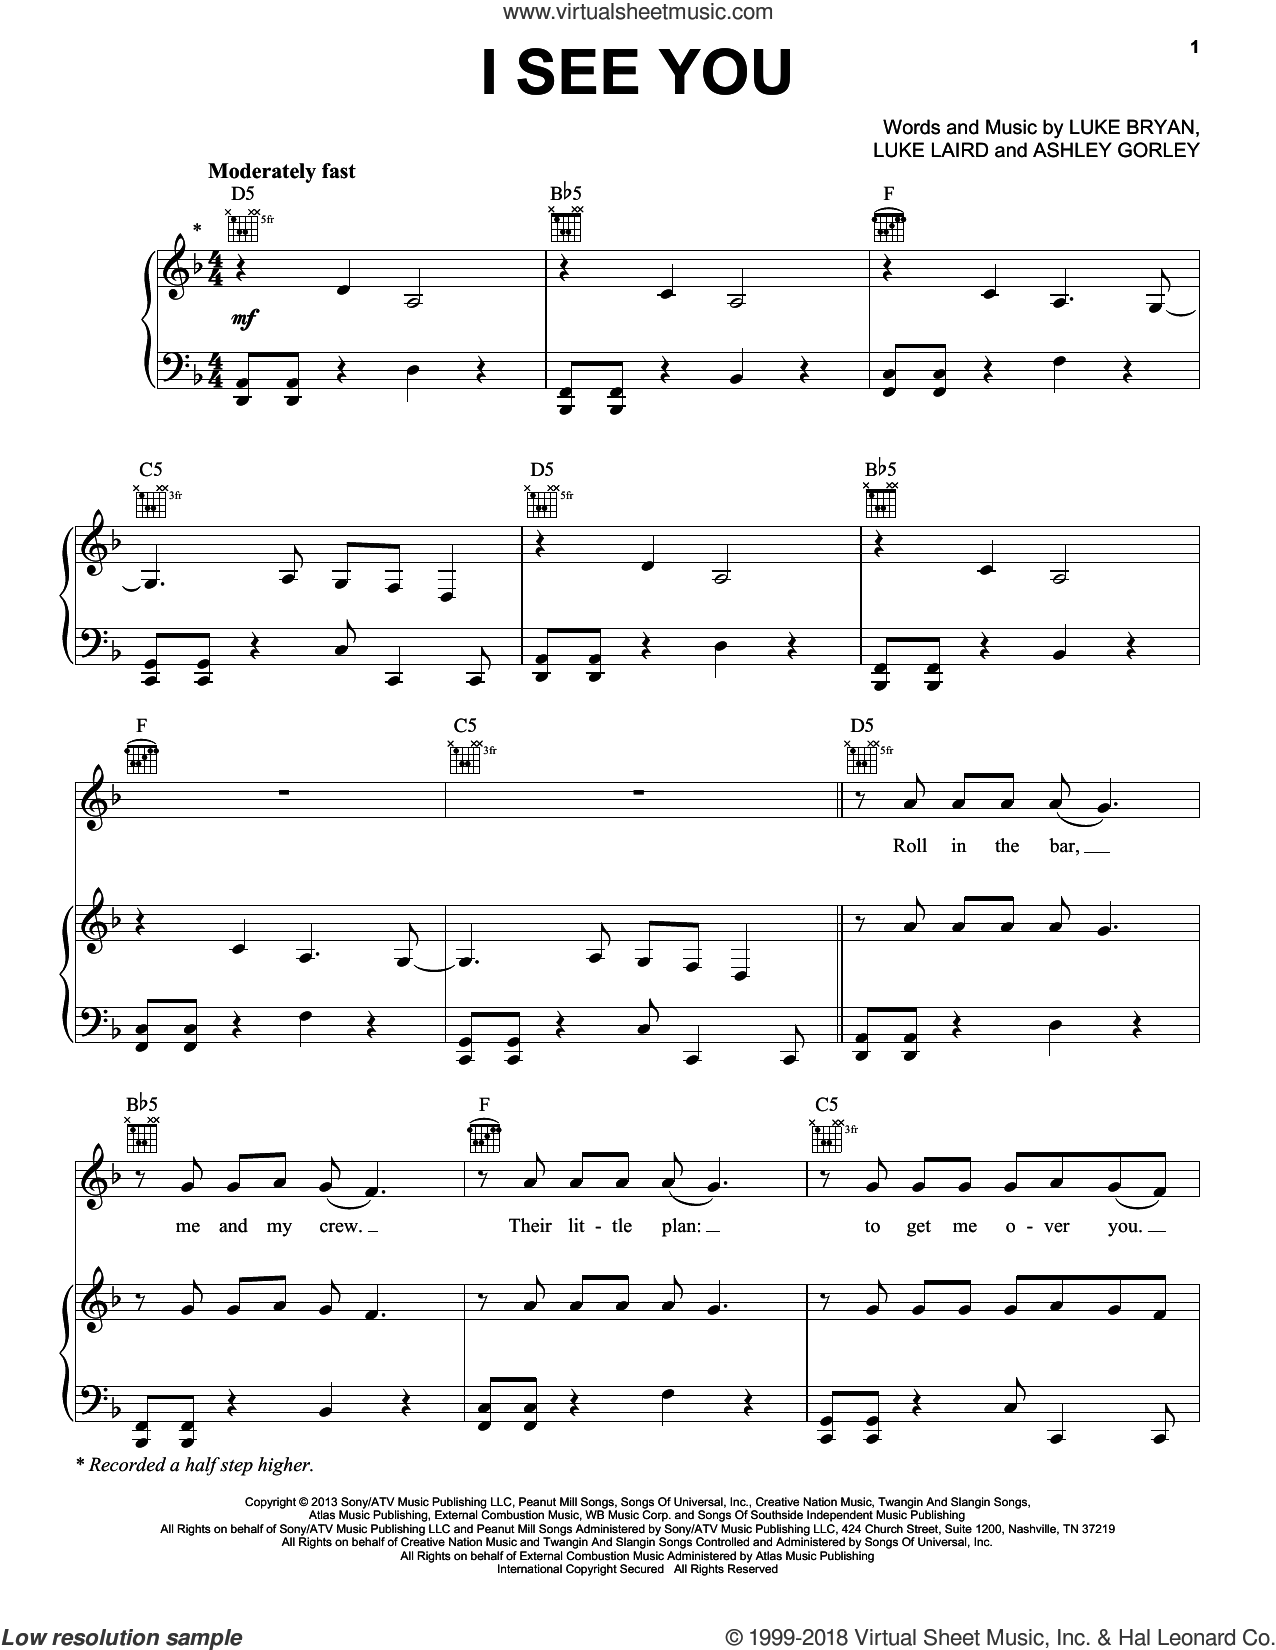 I See You sheet music for voice, piano or guitar by Luke Bryan, Ashley Gorley and Luke Laird, intermediate voice, piano or guitar. Score Image Preview.